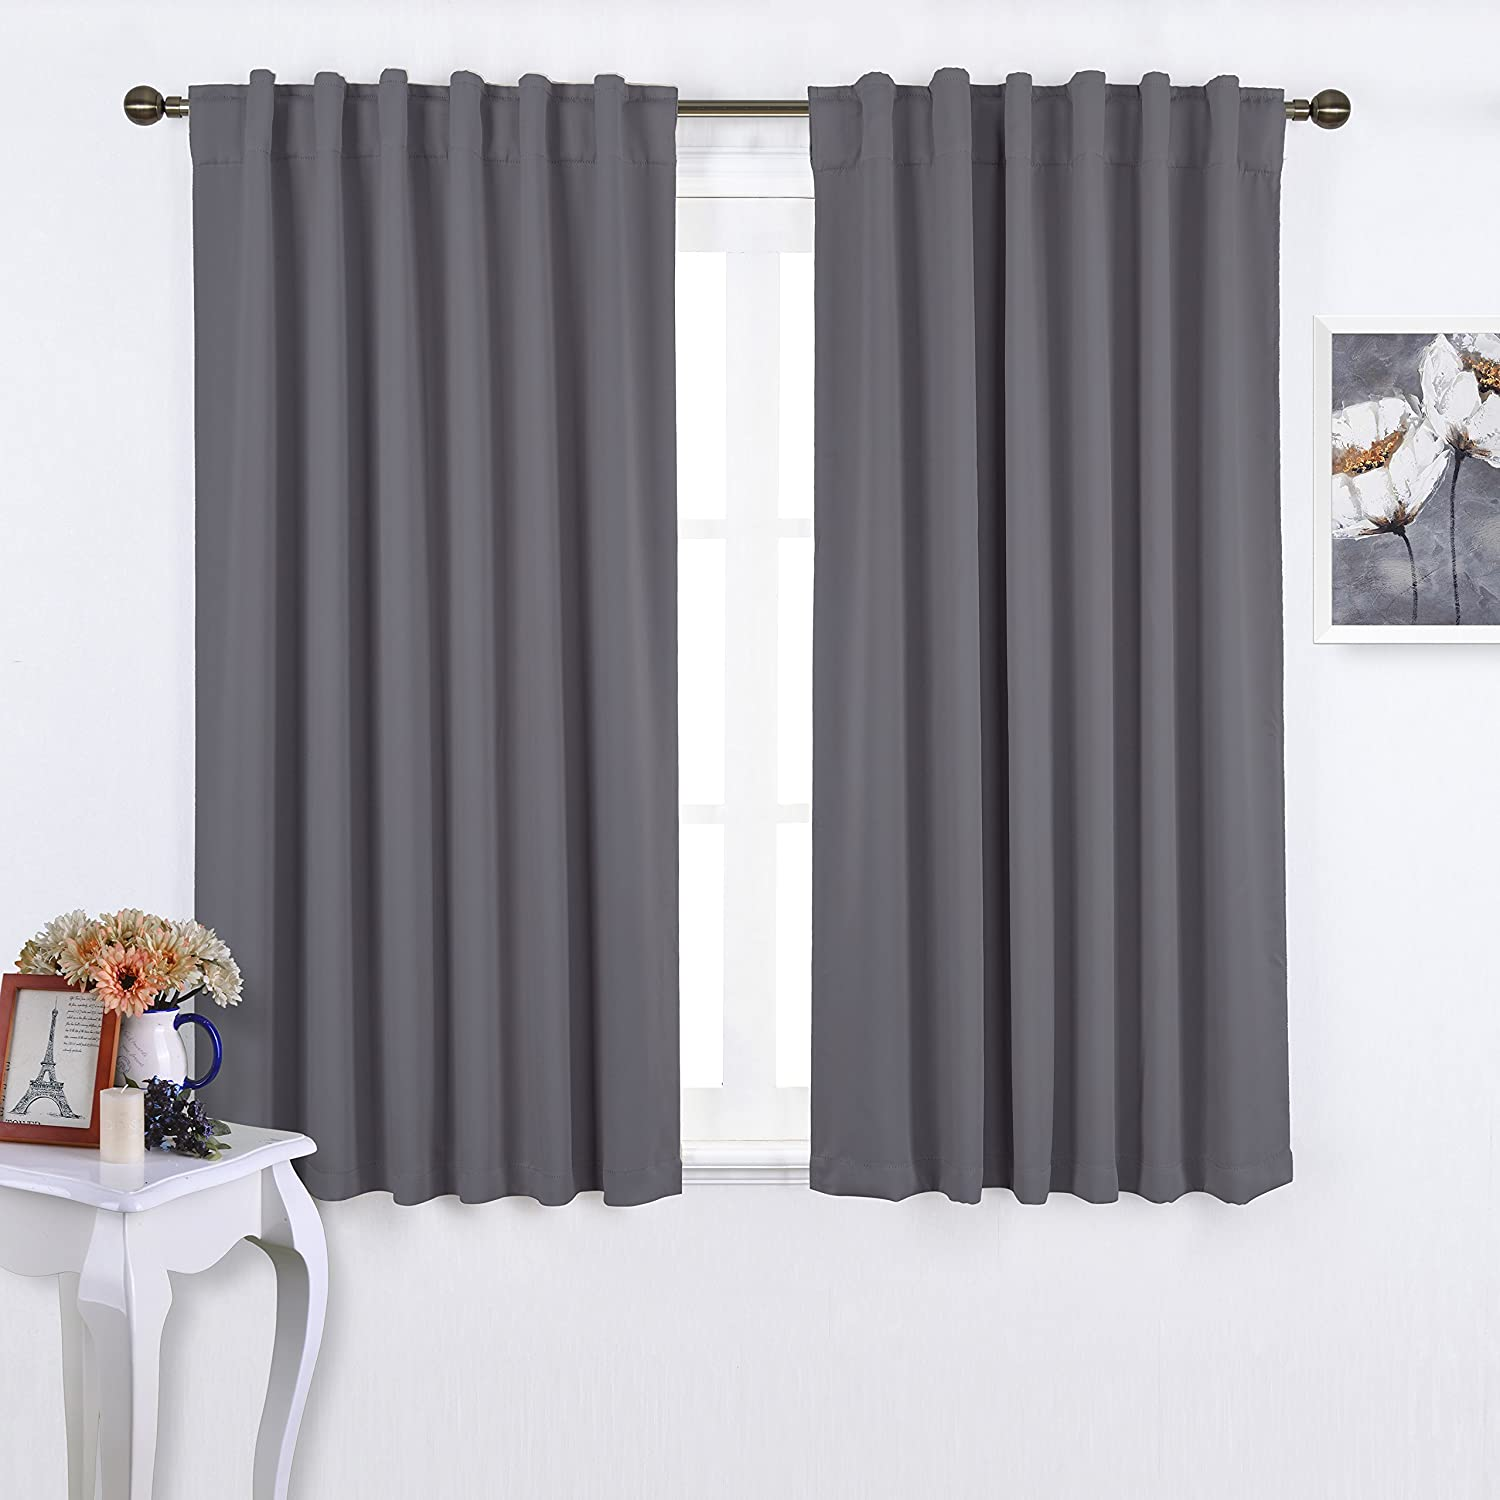 curtains under size amazon blackout valances thermal for full modern of room walmart curtain elegant panels window target cheap living